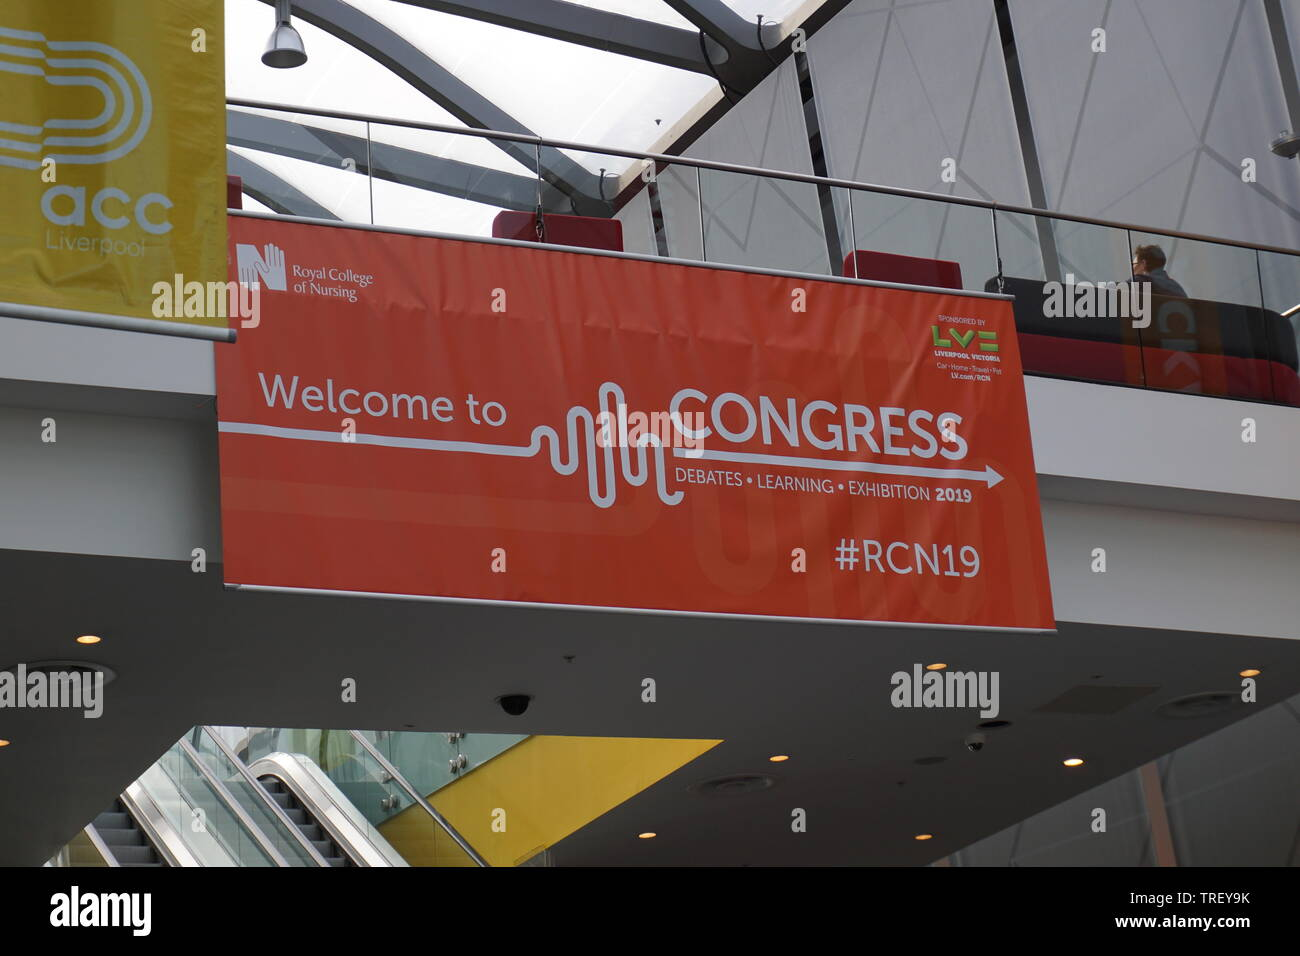 Royal College of Nursing (RCN) 2019 Annual Congress at the ACC in Liverpool. - Stock Image